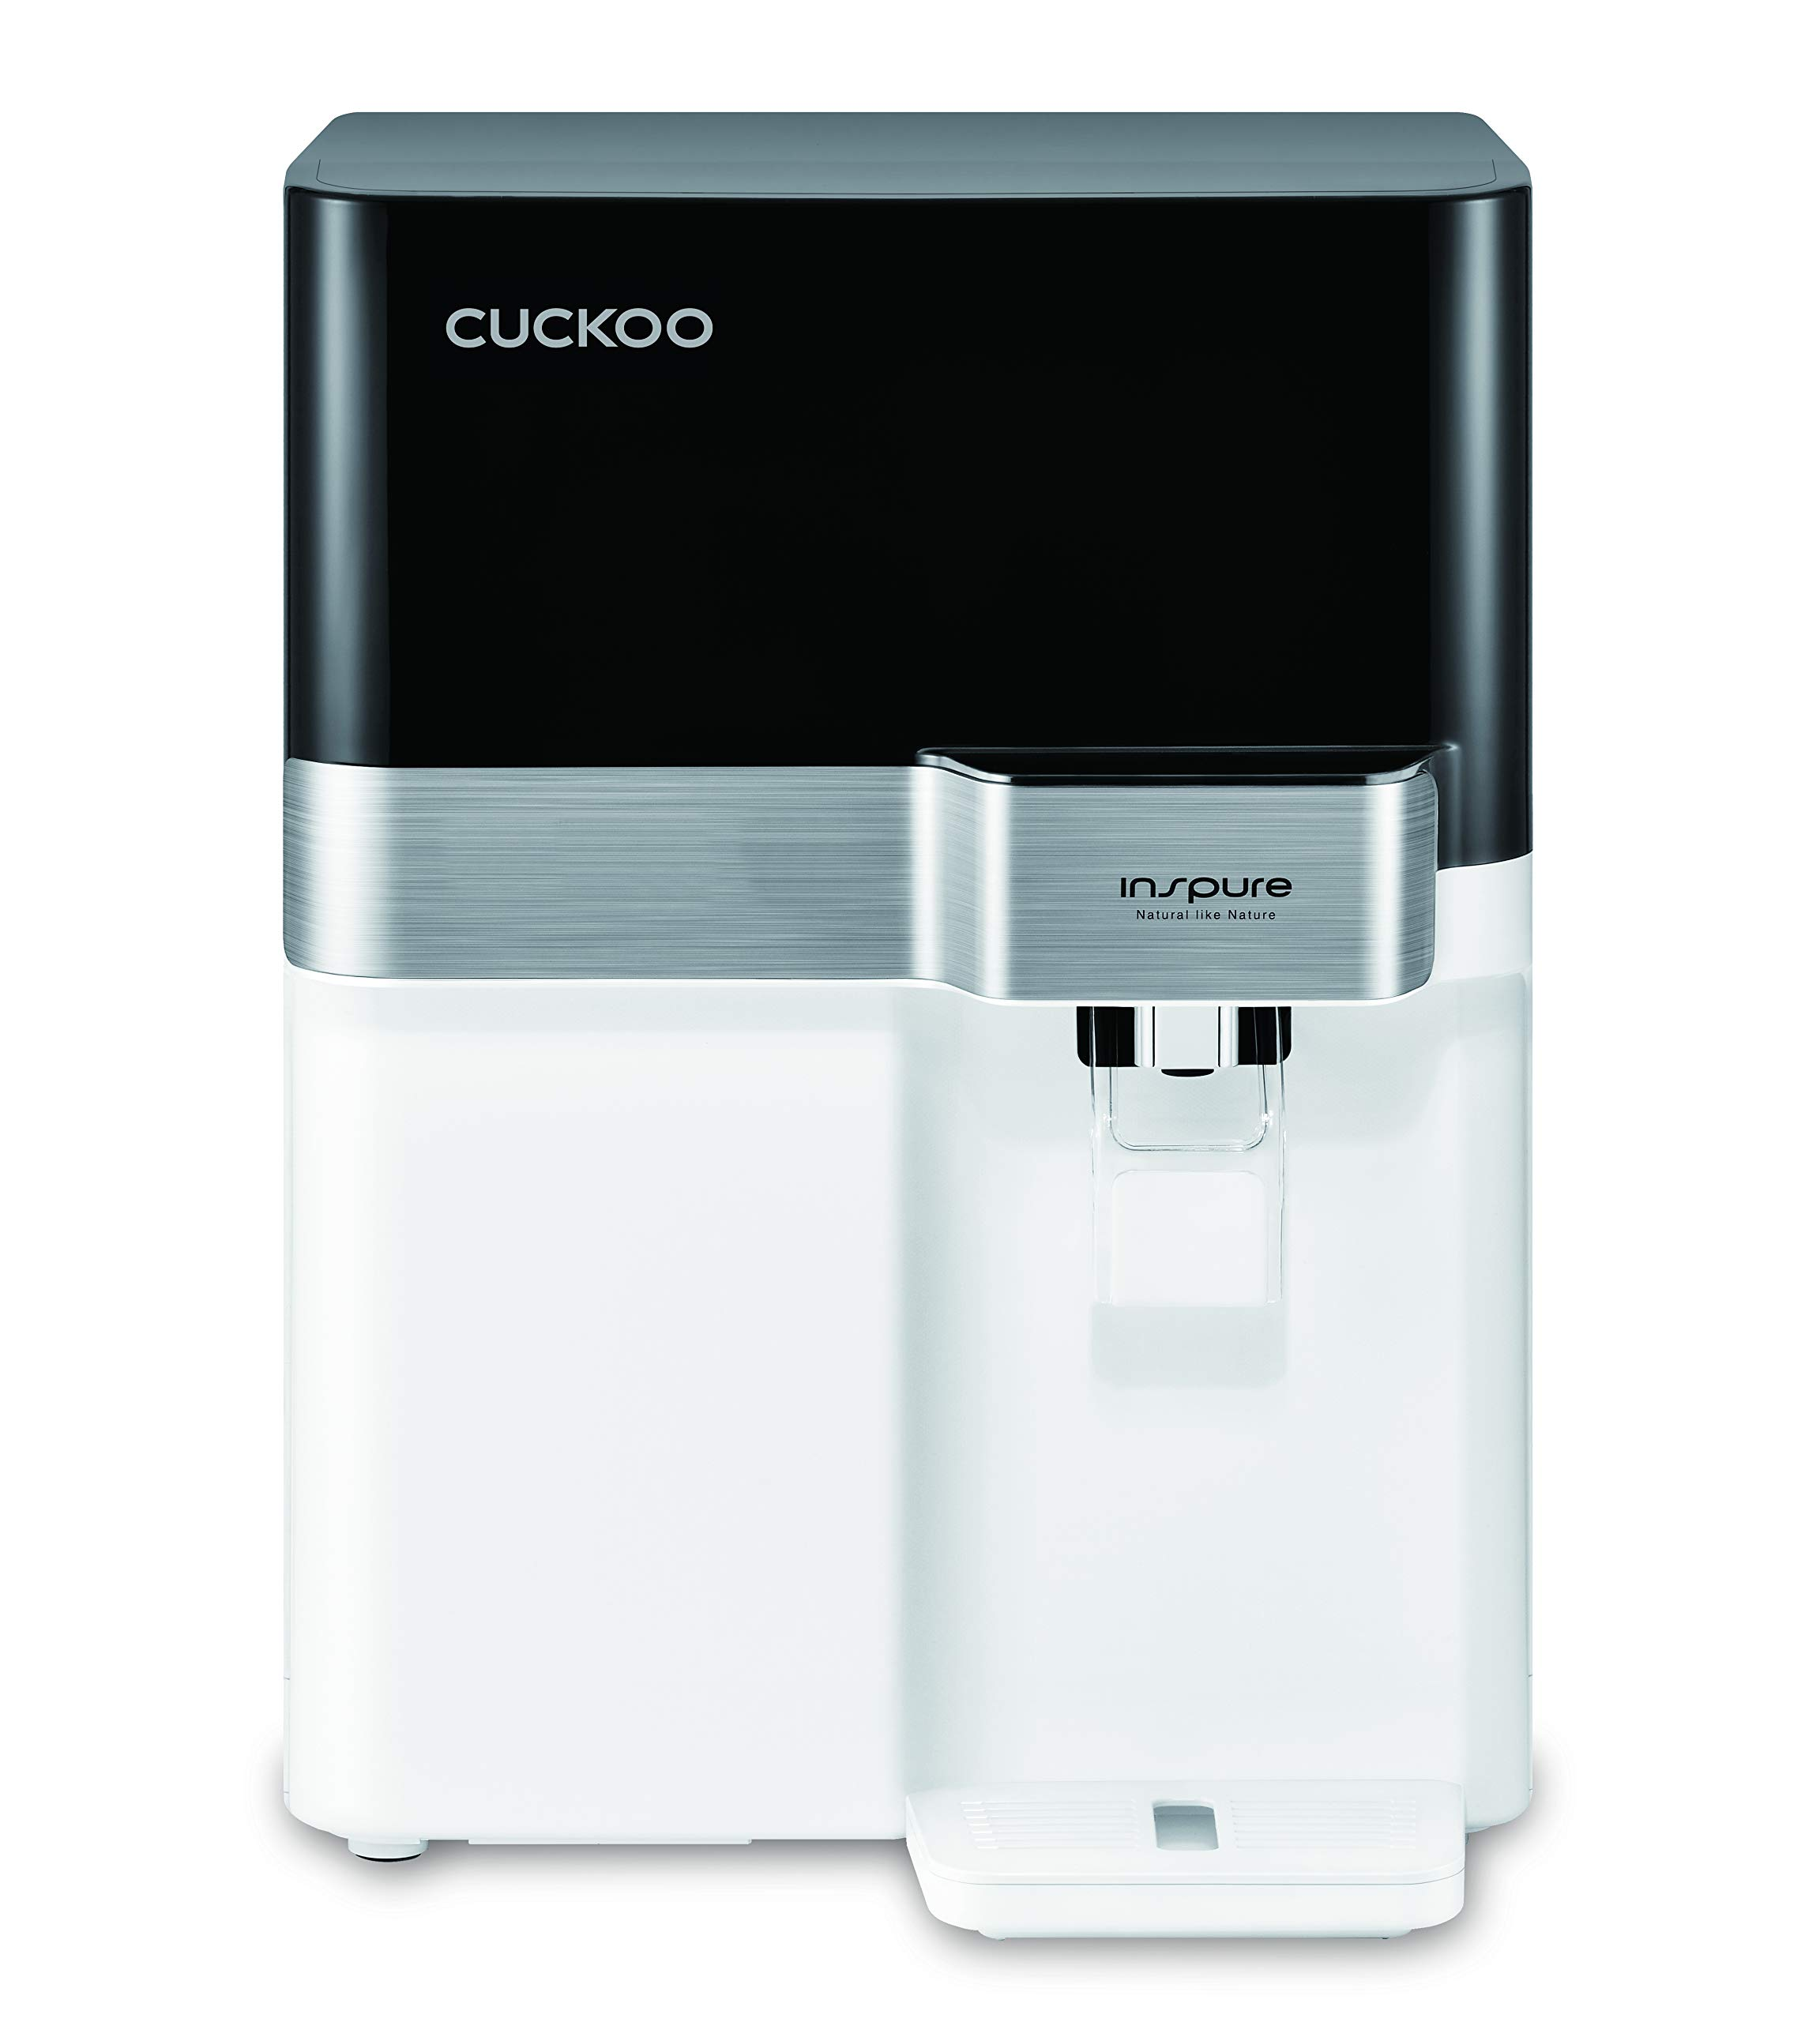 CUCKOO Alkalino Advanced Nano Filteration Non Electric Water Purifier - 7.5 Litres